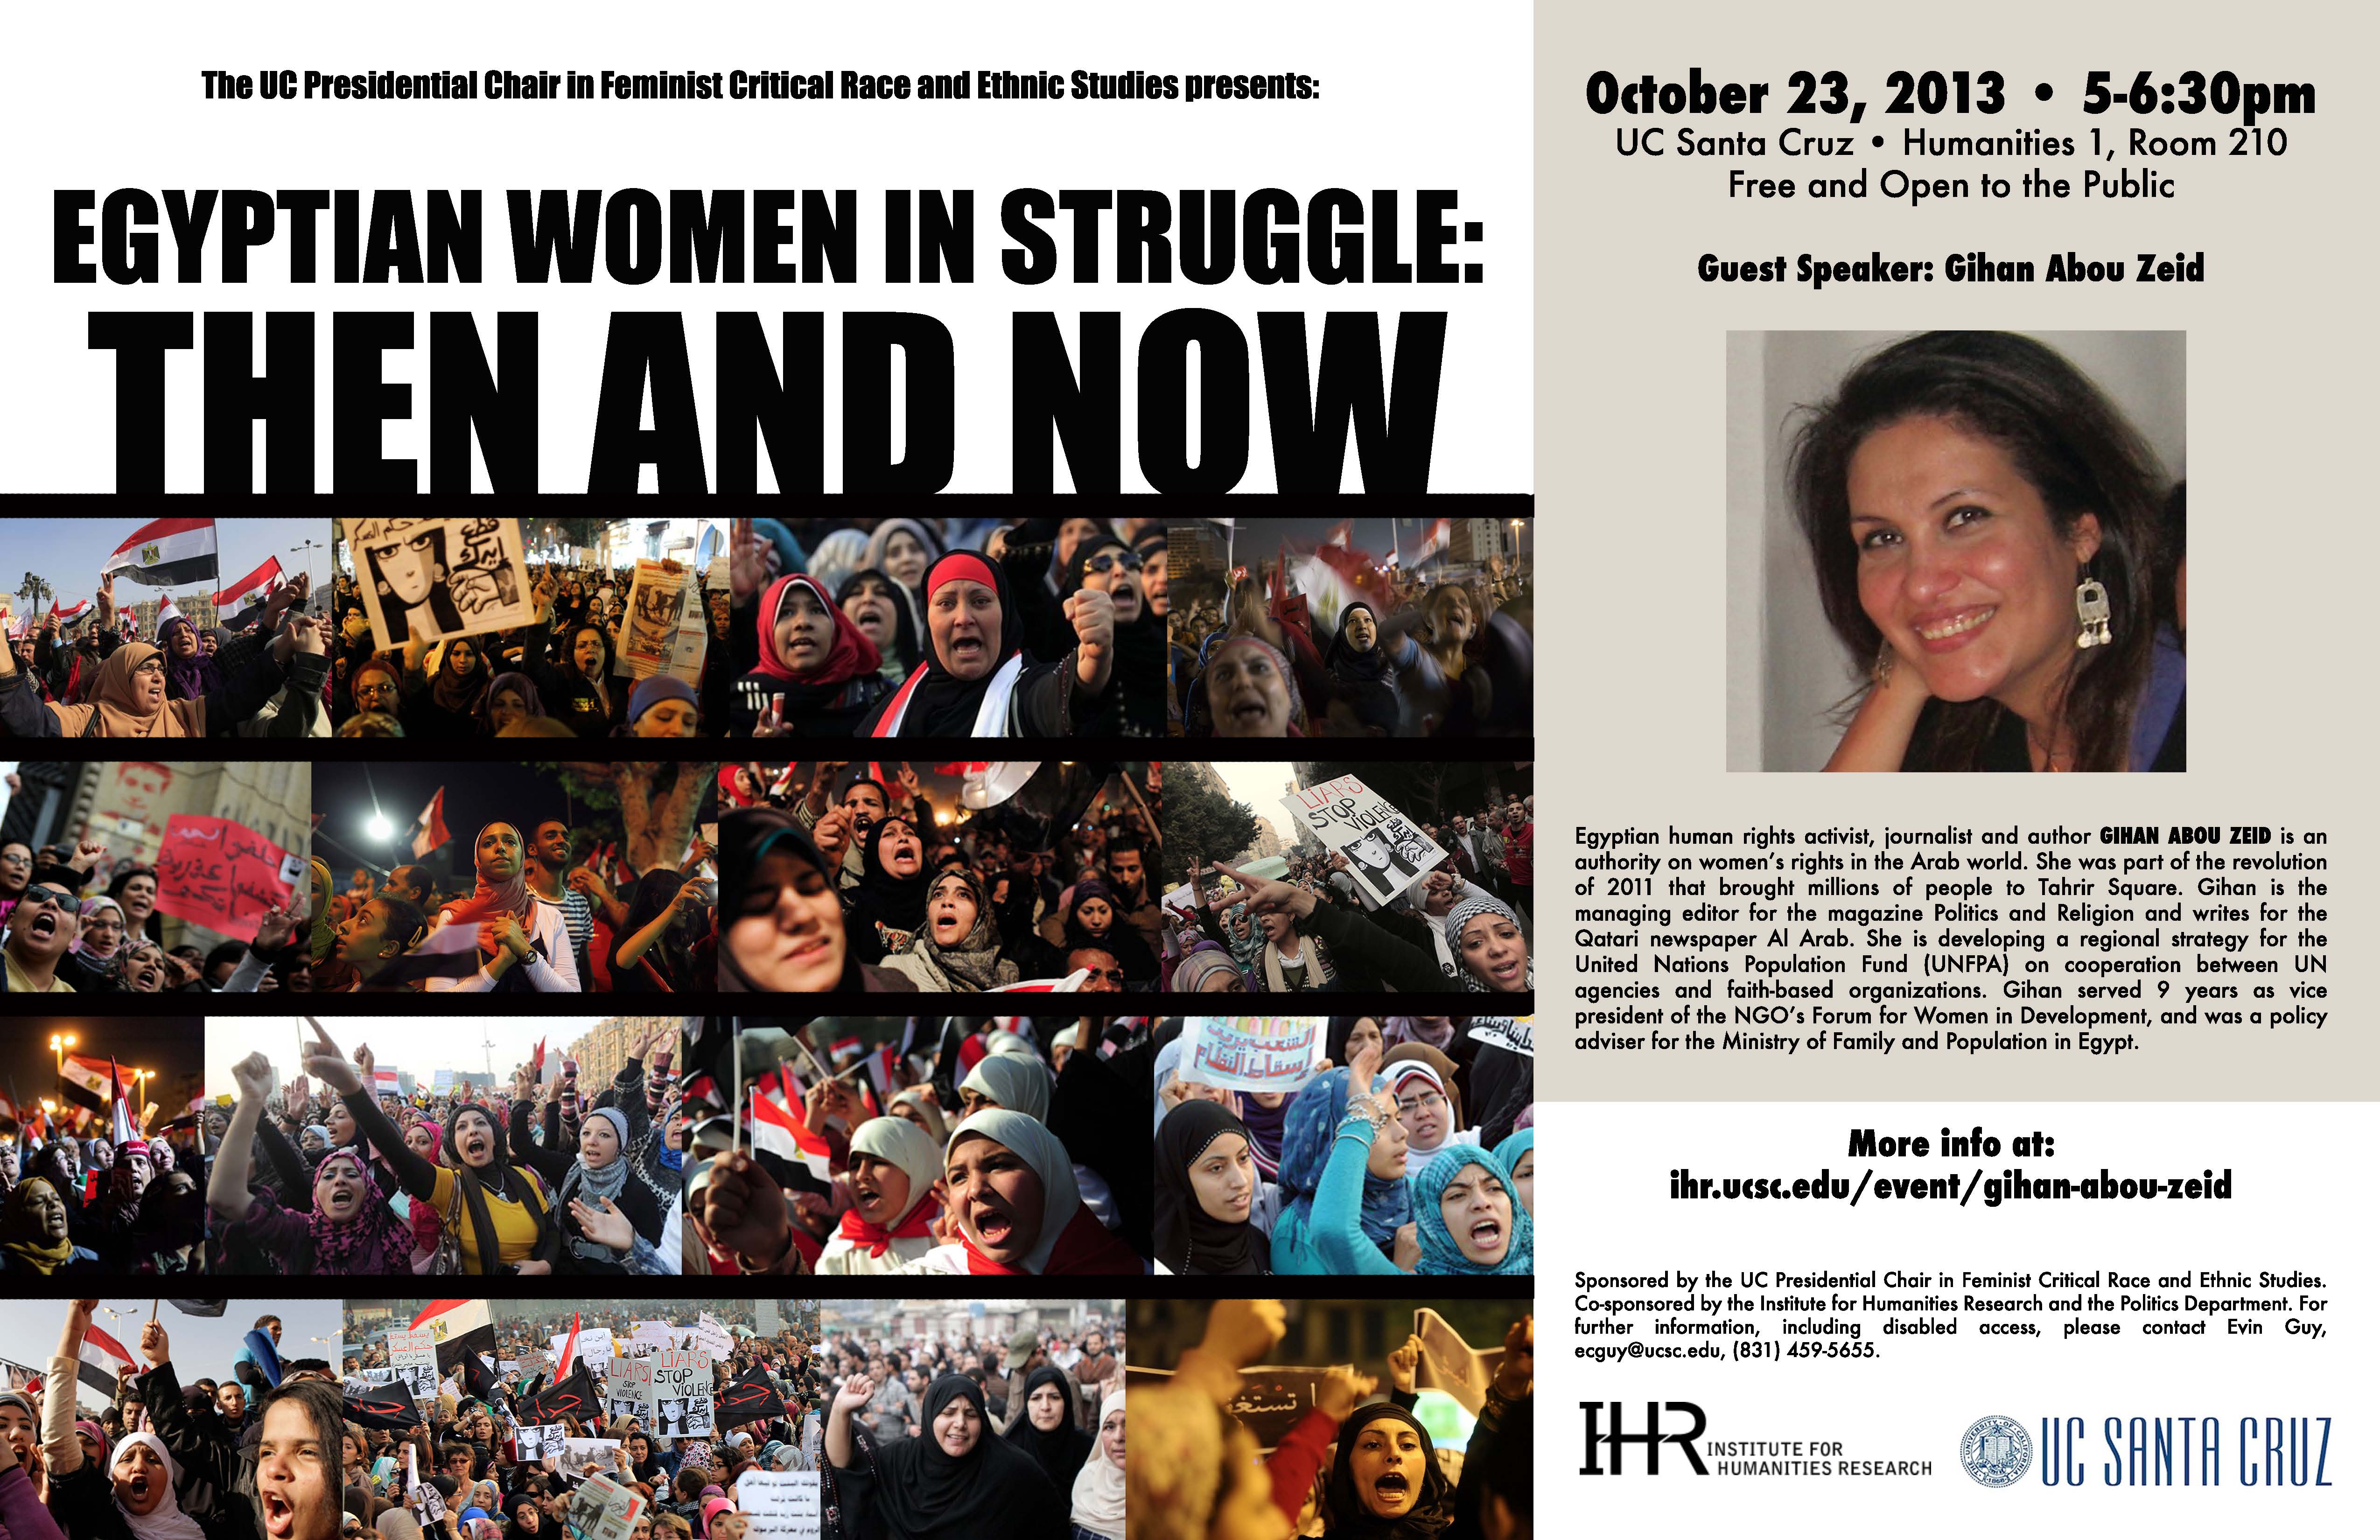 Egyptian Women in Struggle: Then and Now